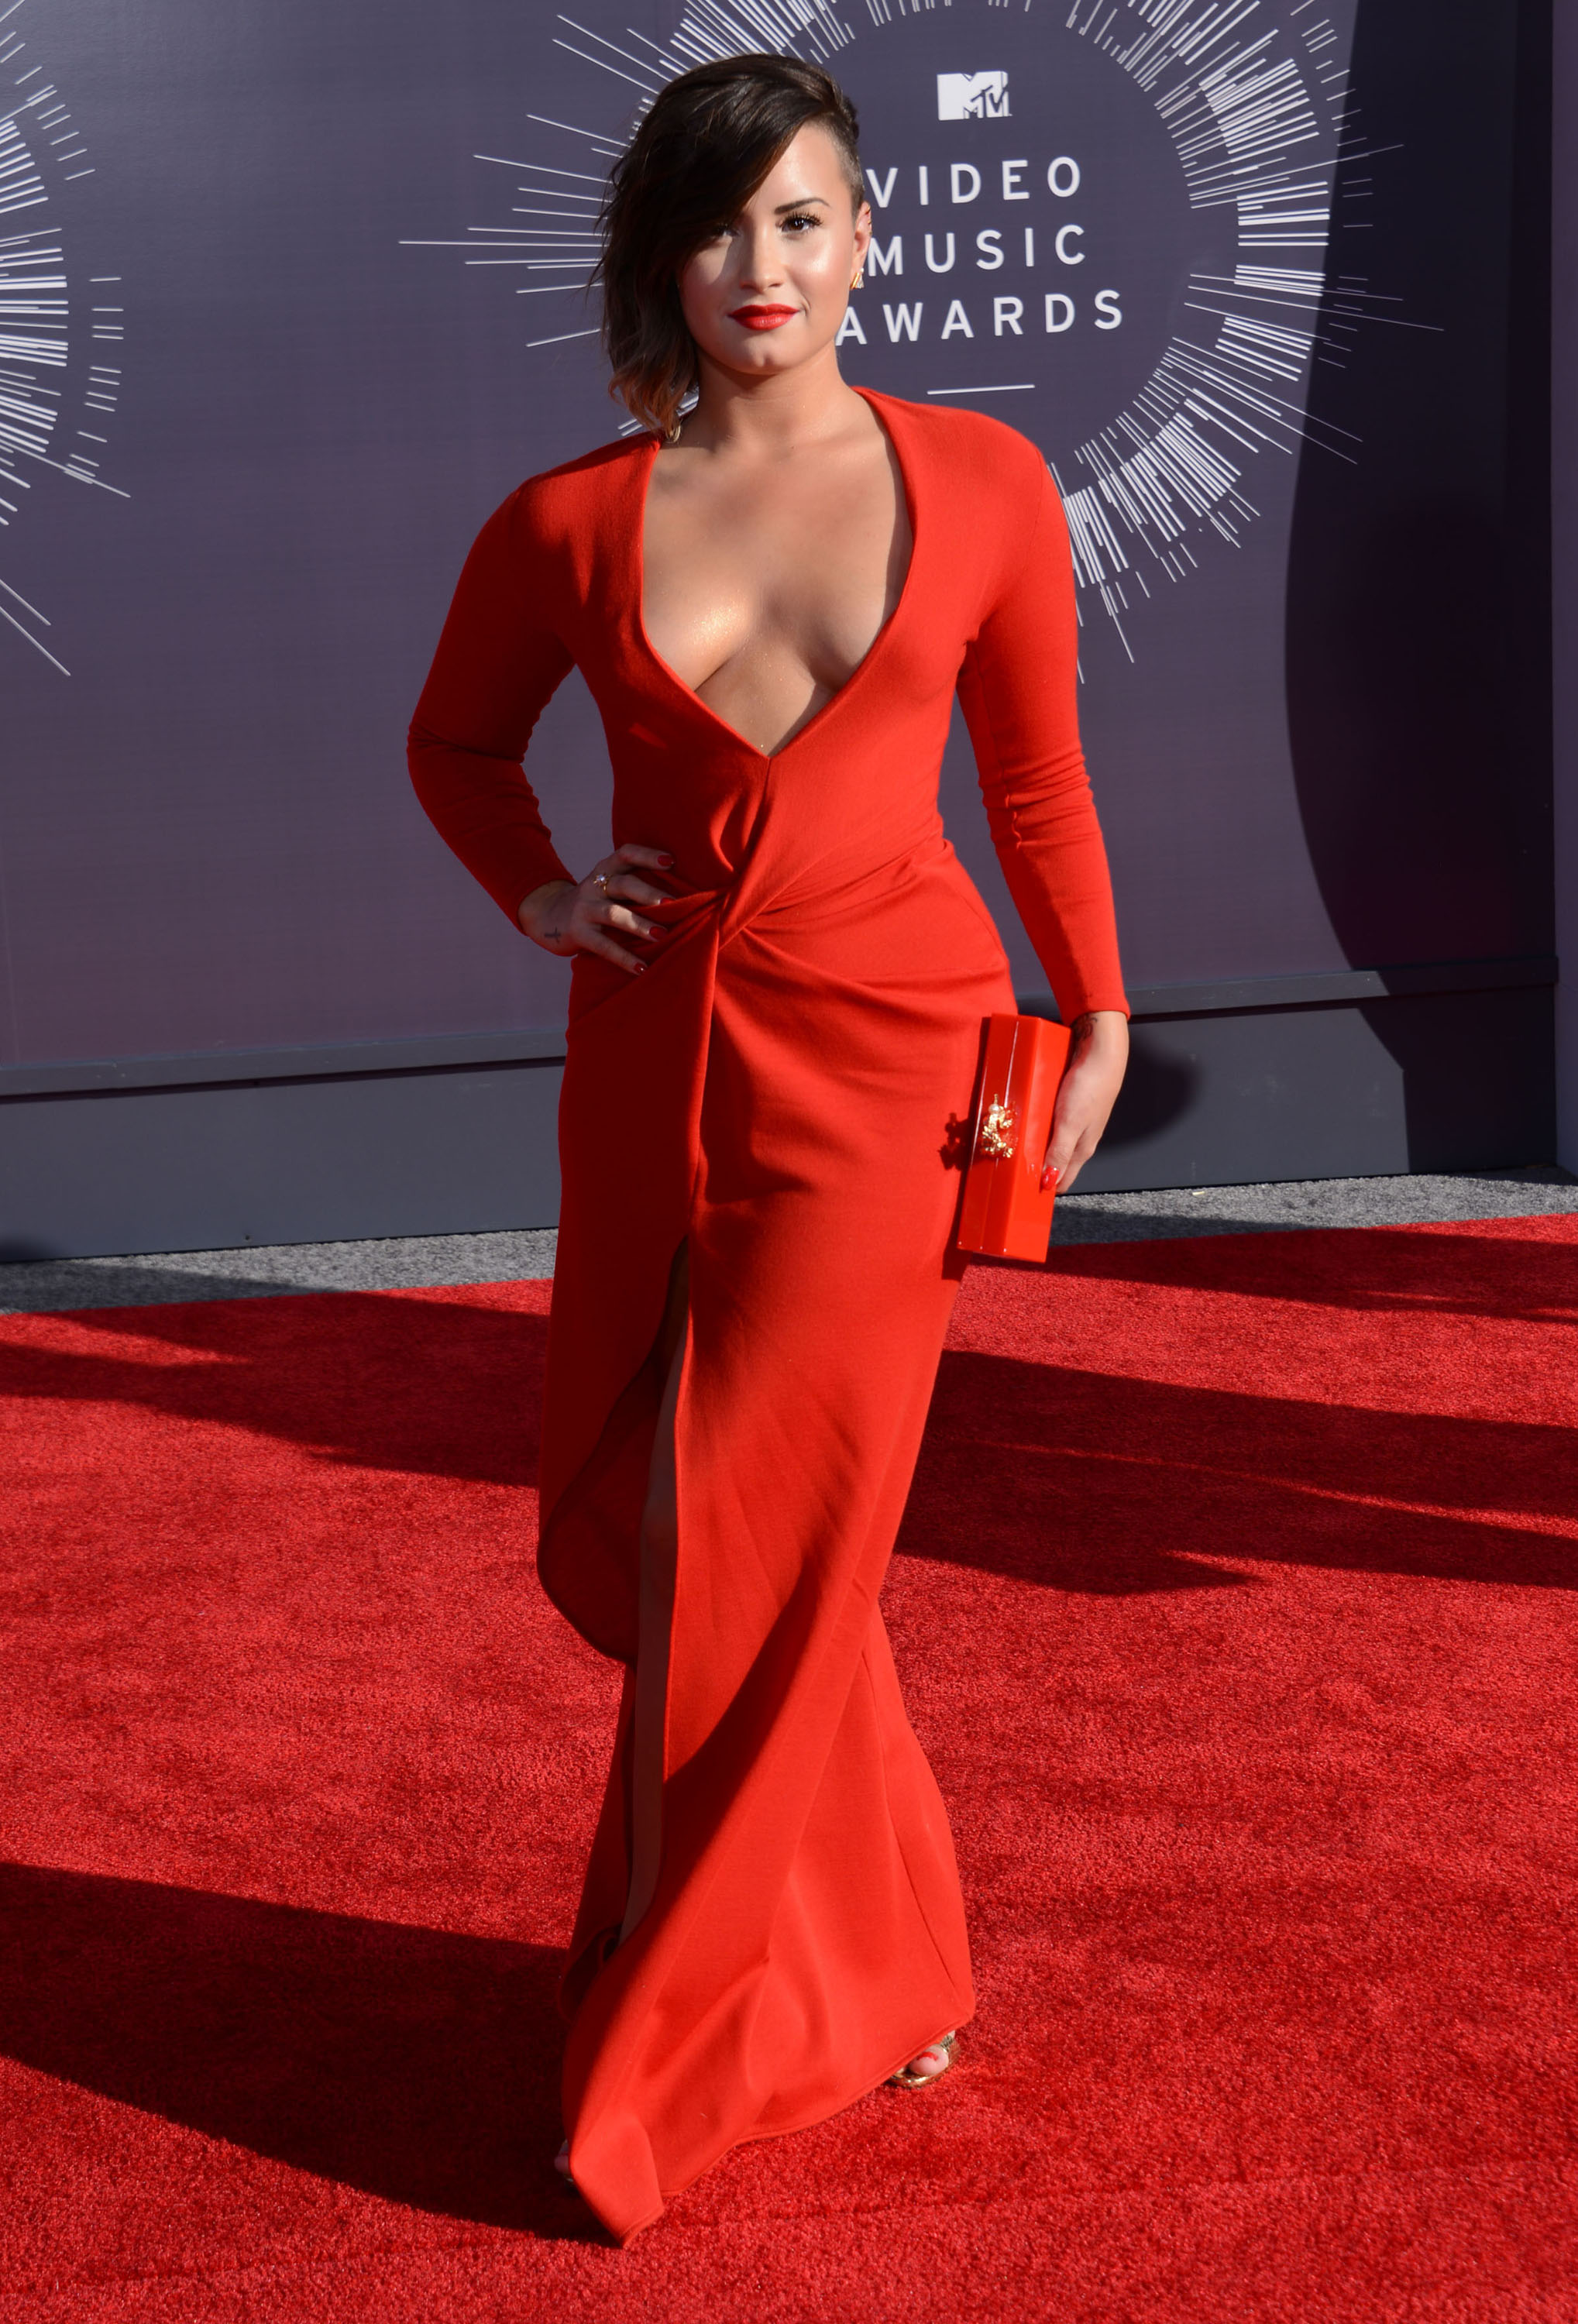 VMAs Fug Carpet: Demi Lovato in Lanvin